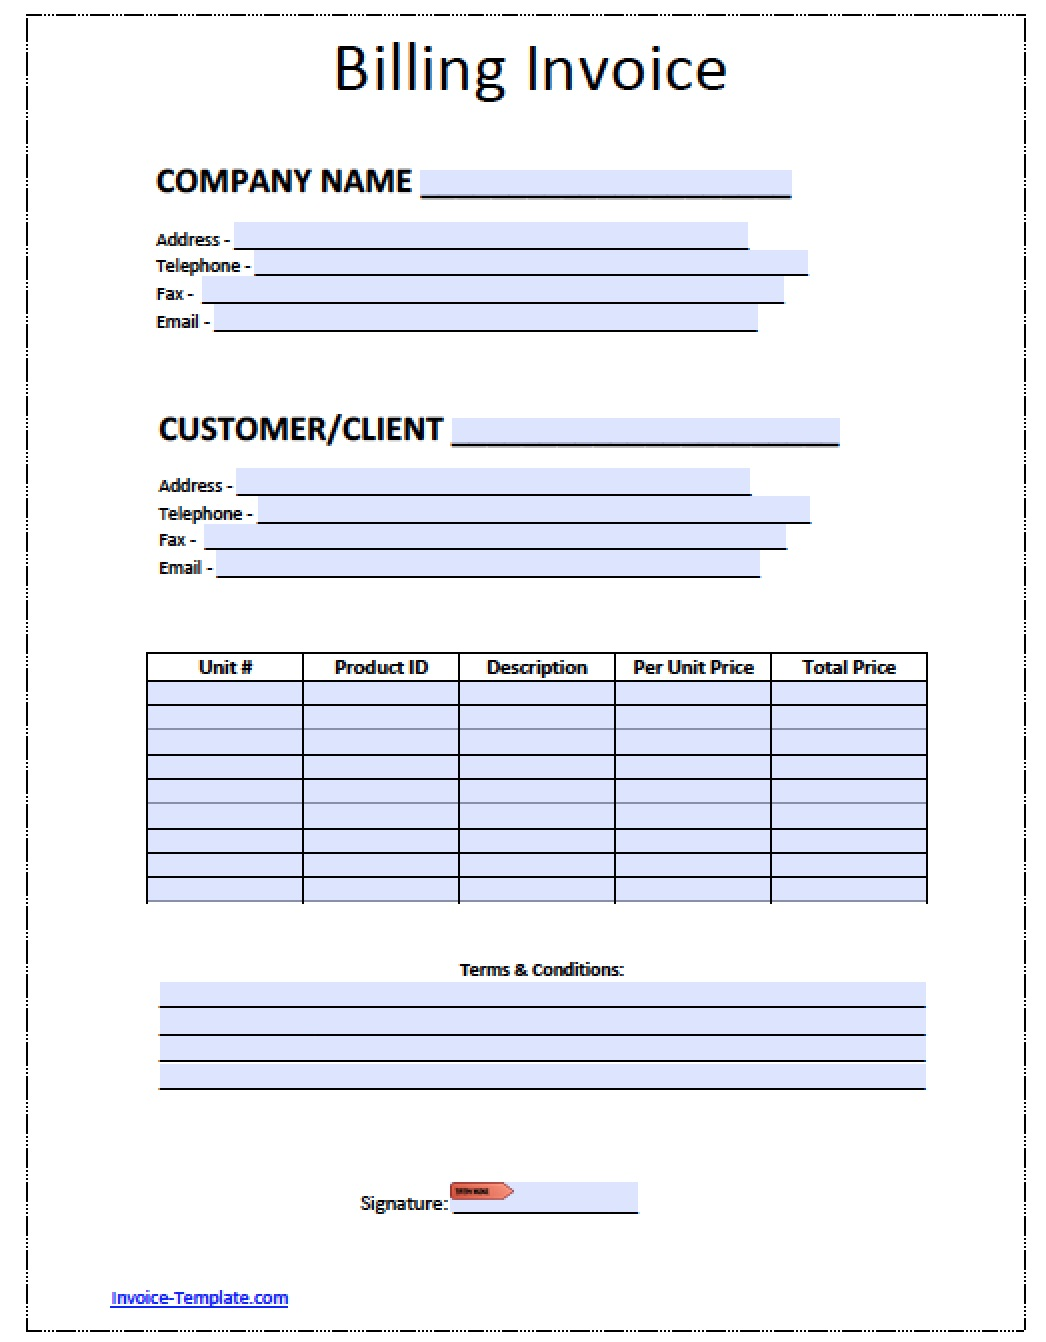 Centralasianshepherdus  Pleasing Billing Invoice Invoices Faq U Cloudflare Support Billing  With Likable Free Billing Invoice Template  Excel  Pdf  Word Doc  Billing With Endearing Model Invoice Format Also Tax Invoice Without Abn In Addition How To Do Invoicing And Customizable Invoice Software As Well As Invoice Discounting Uk Additionally Invoice Program Free Download From Happytomco With Centralasianshepherdus  Likable Billing Invoice Invoices Faq U Cloudflare Support Billing  With Endearing Free Billing Invoice Template  Excel  Pdf  Word Doc  Billing And Pleasing Model Invoice Format Also Tax Invoice Without Abn In Addition How To Do Invoicing From Happytomco